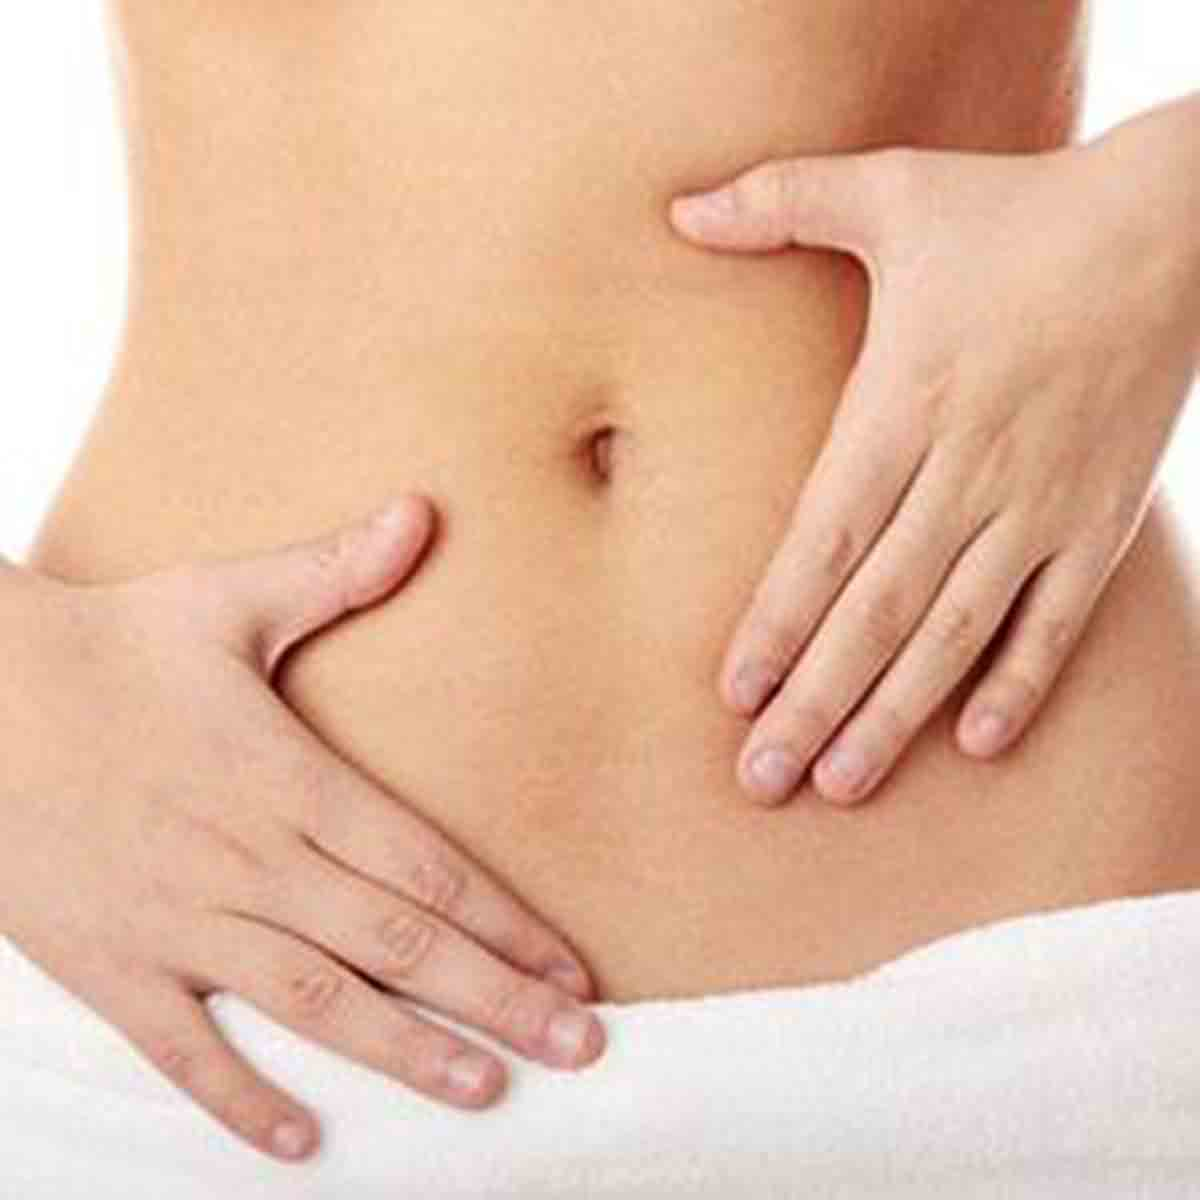 The Health Benefits Of Glucomannan - Treats Constipation